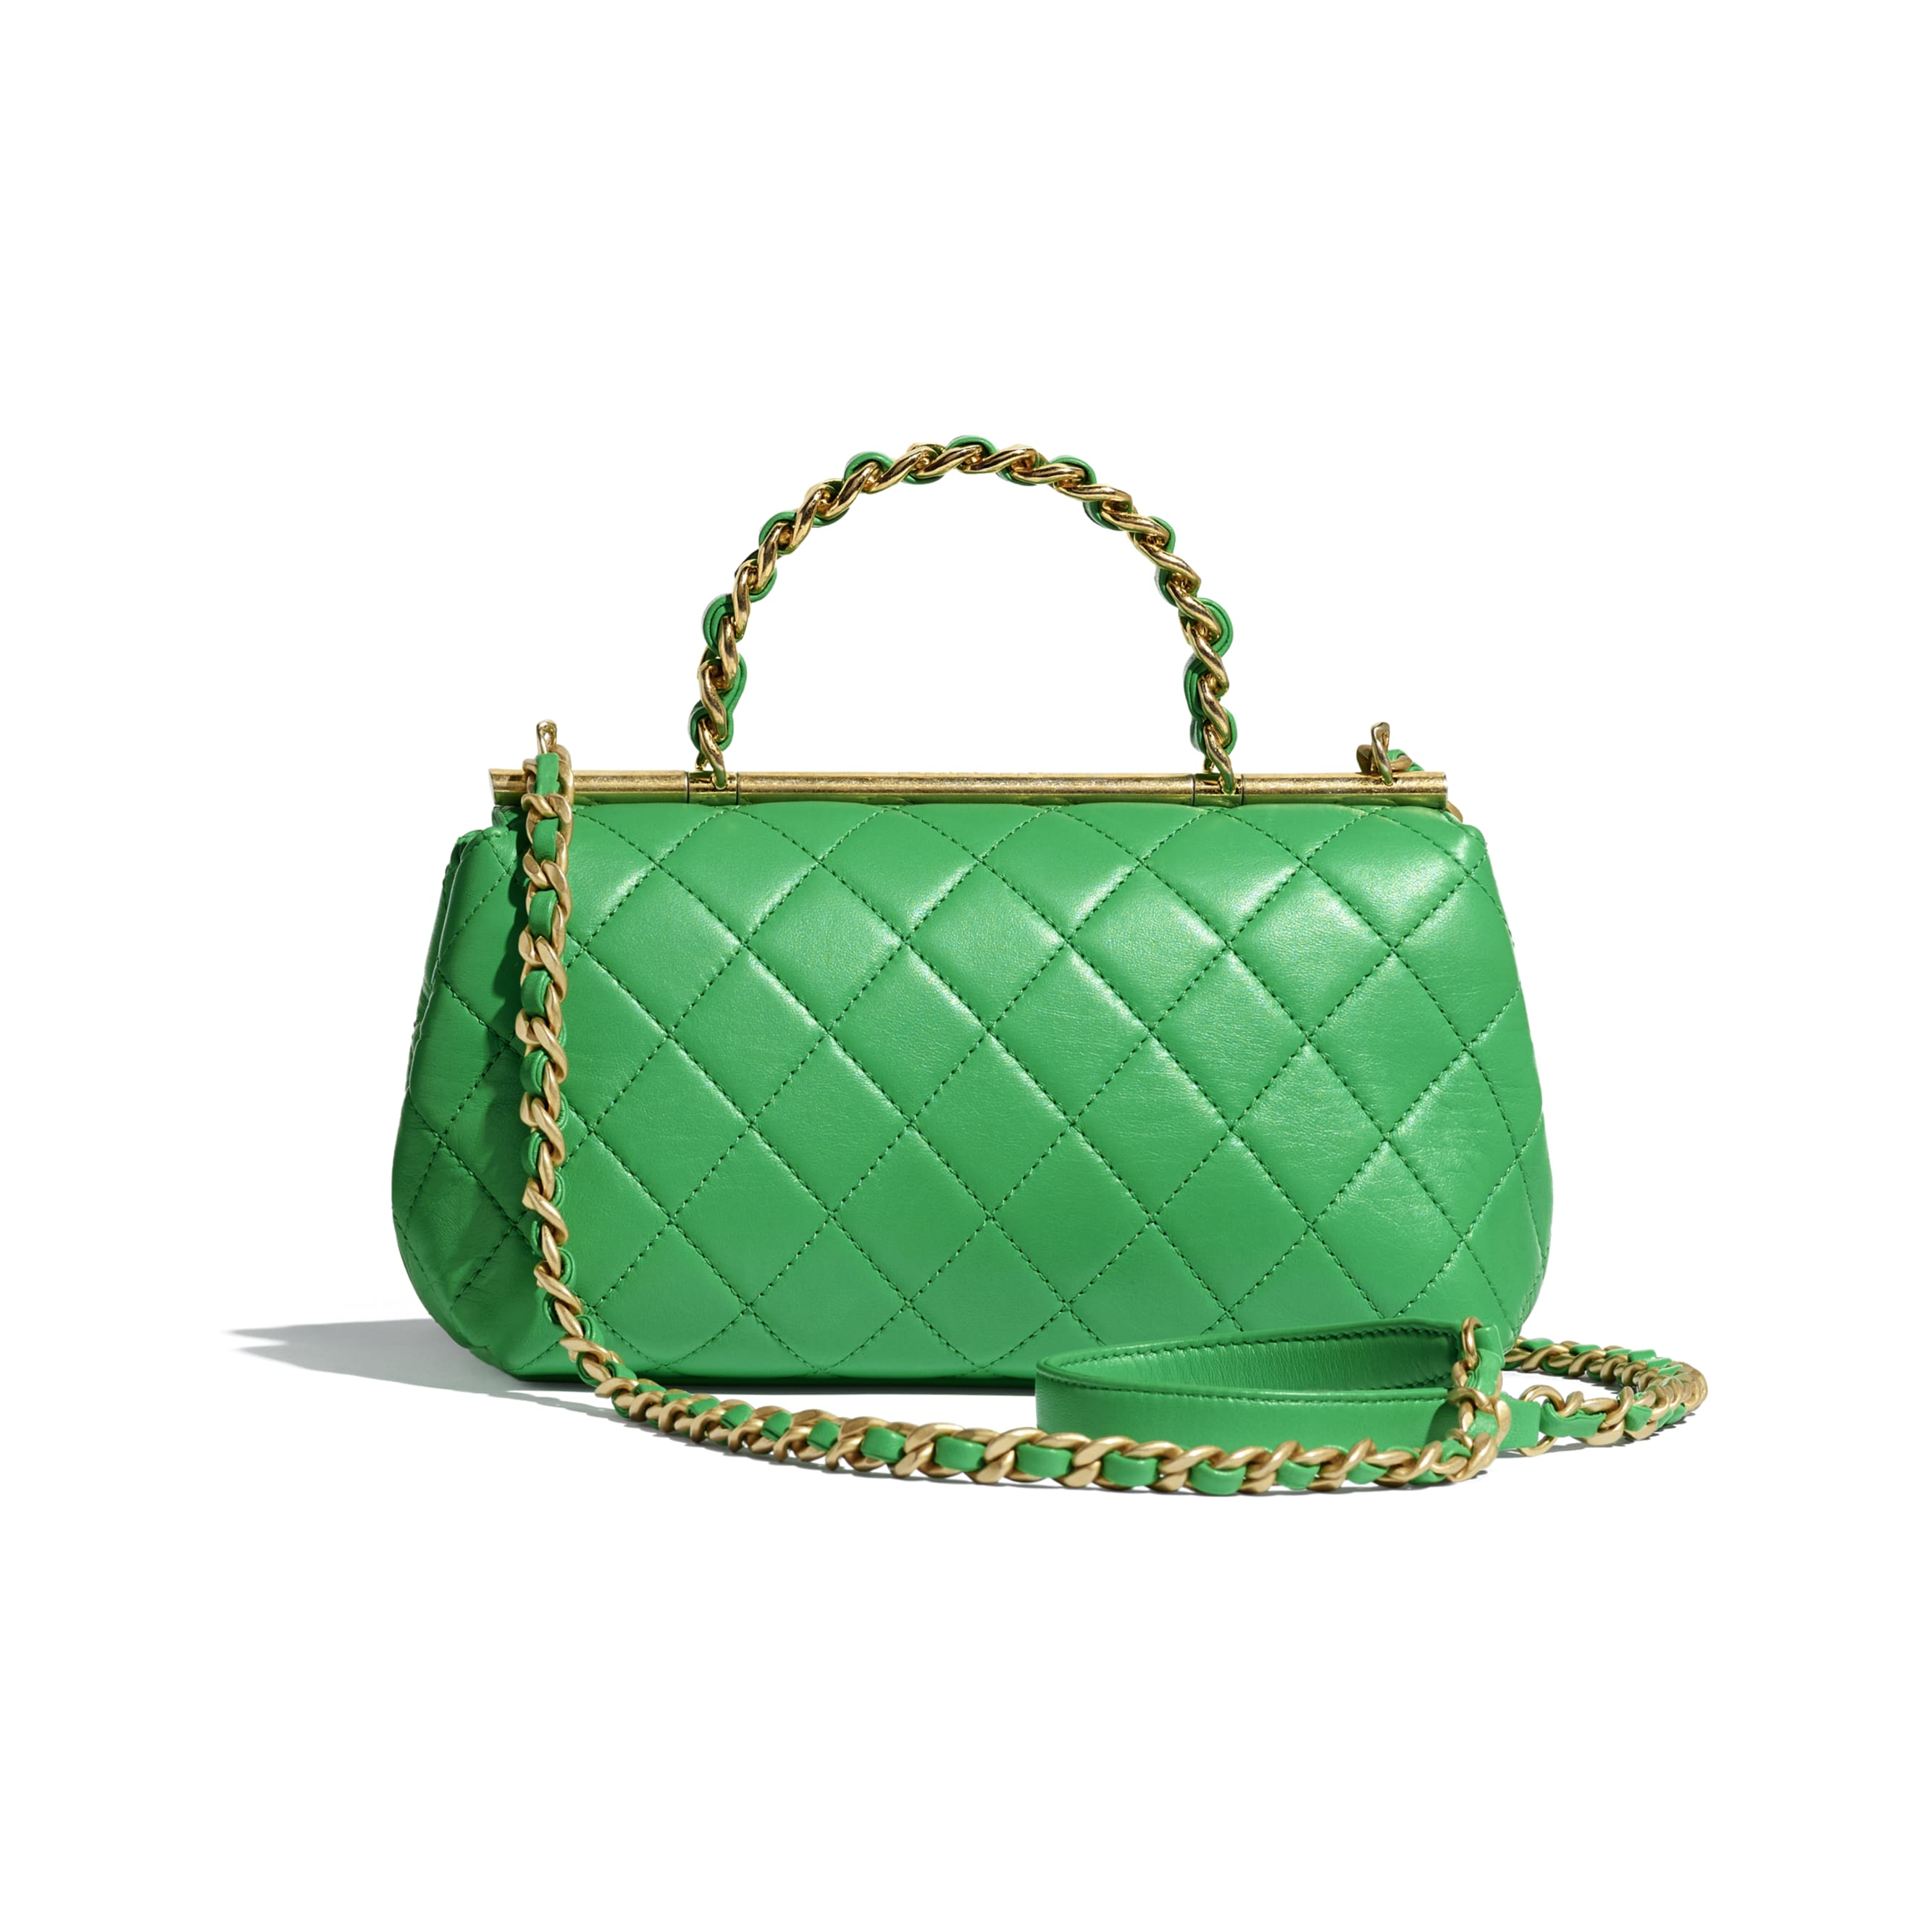 Small Flap Bag With Top Handle - Green - Lambskin - Alternative view - see standard sized version